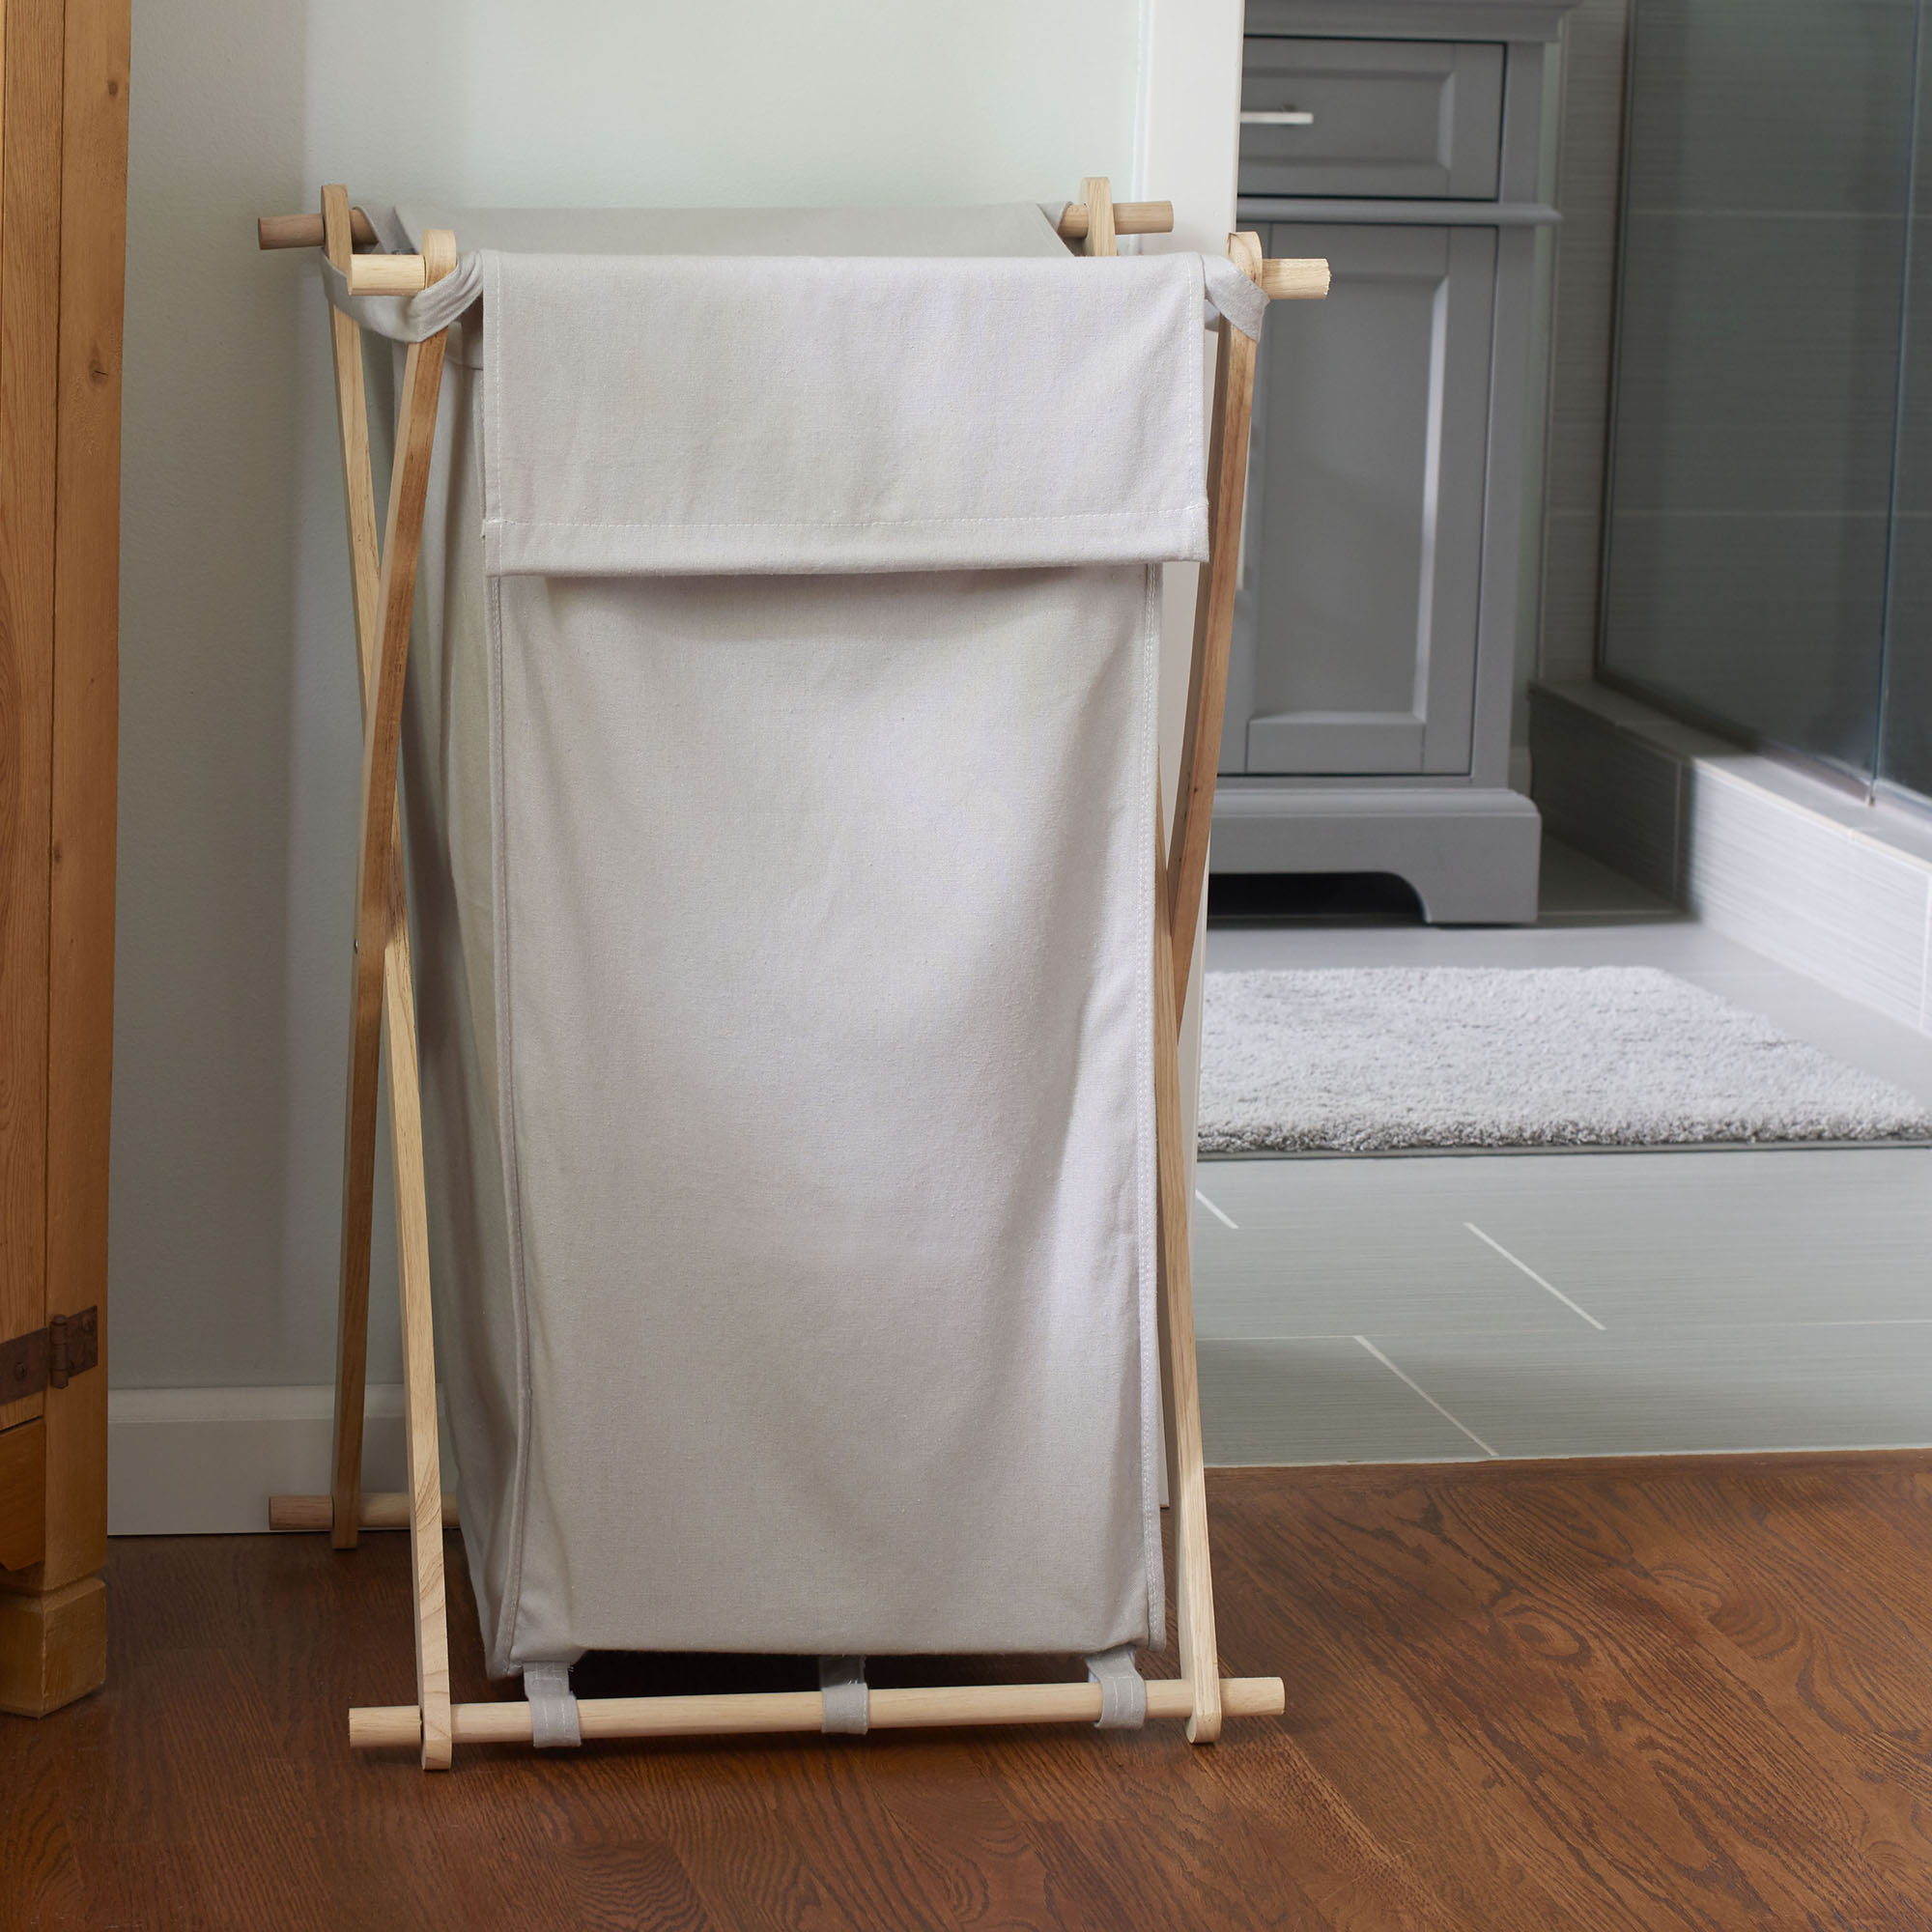 household essentials wood x frame clothes hamper with washable gray laundry bag walmart com